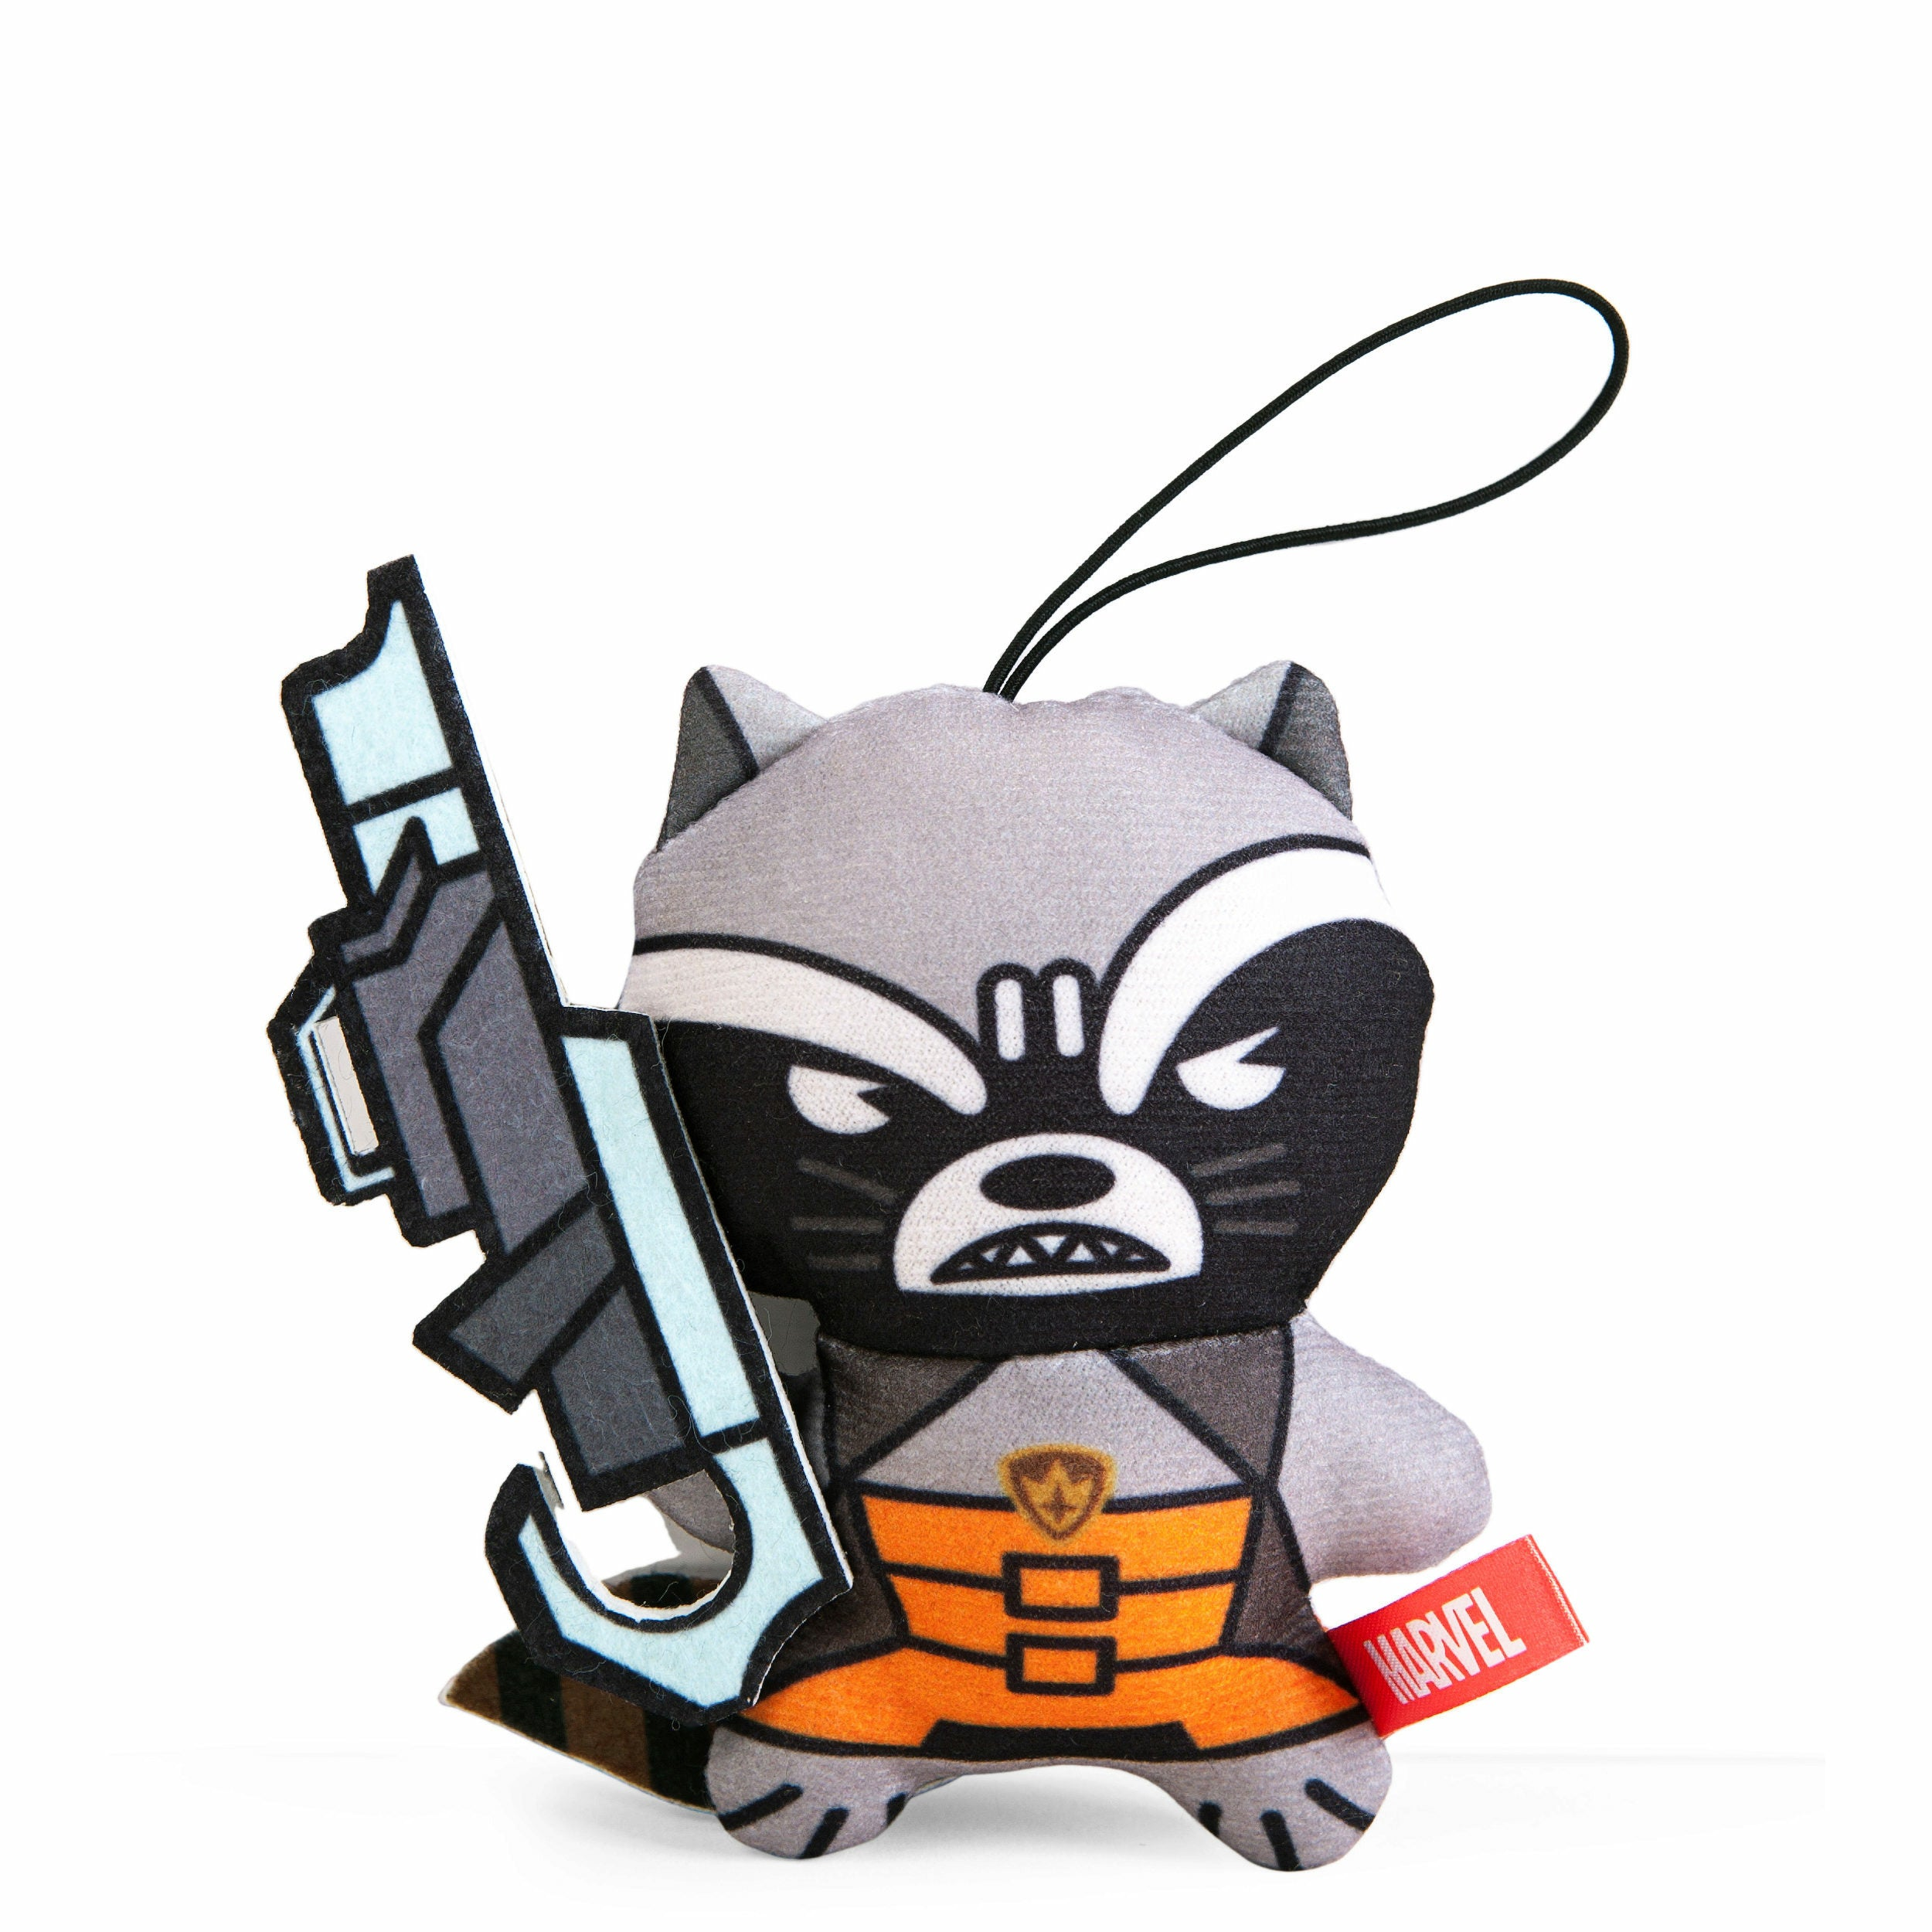 Marvel Rocket Kawaii Art Collection Plush Toy